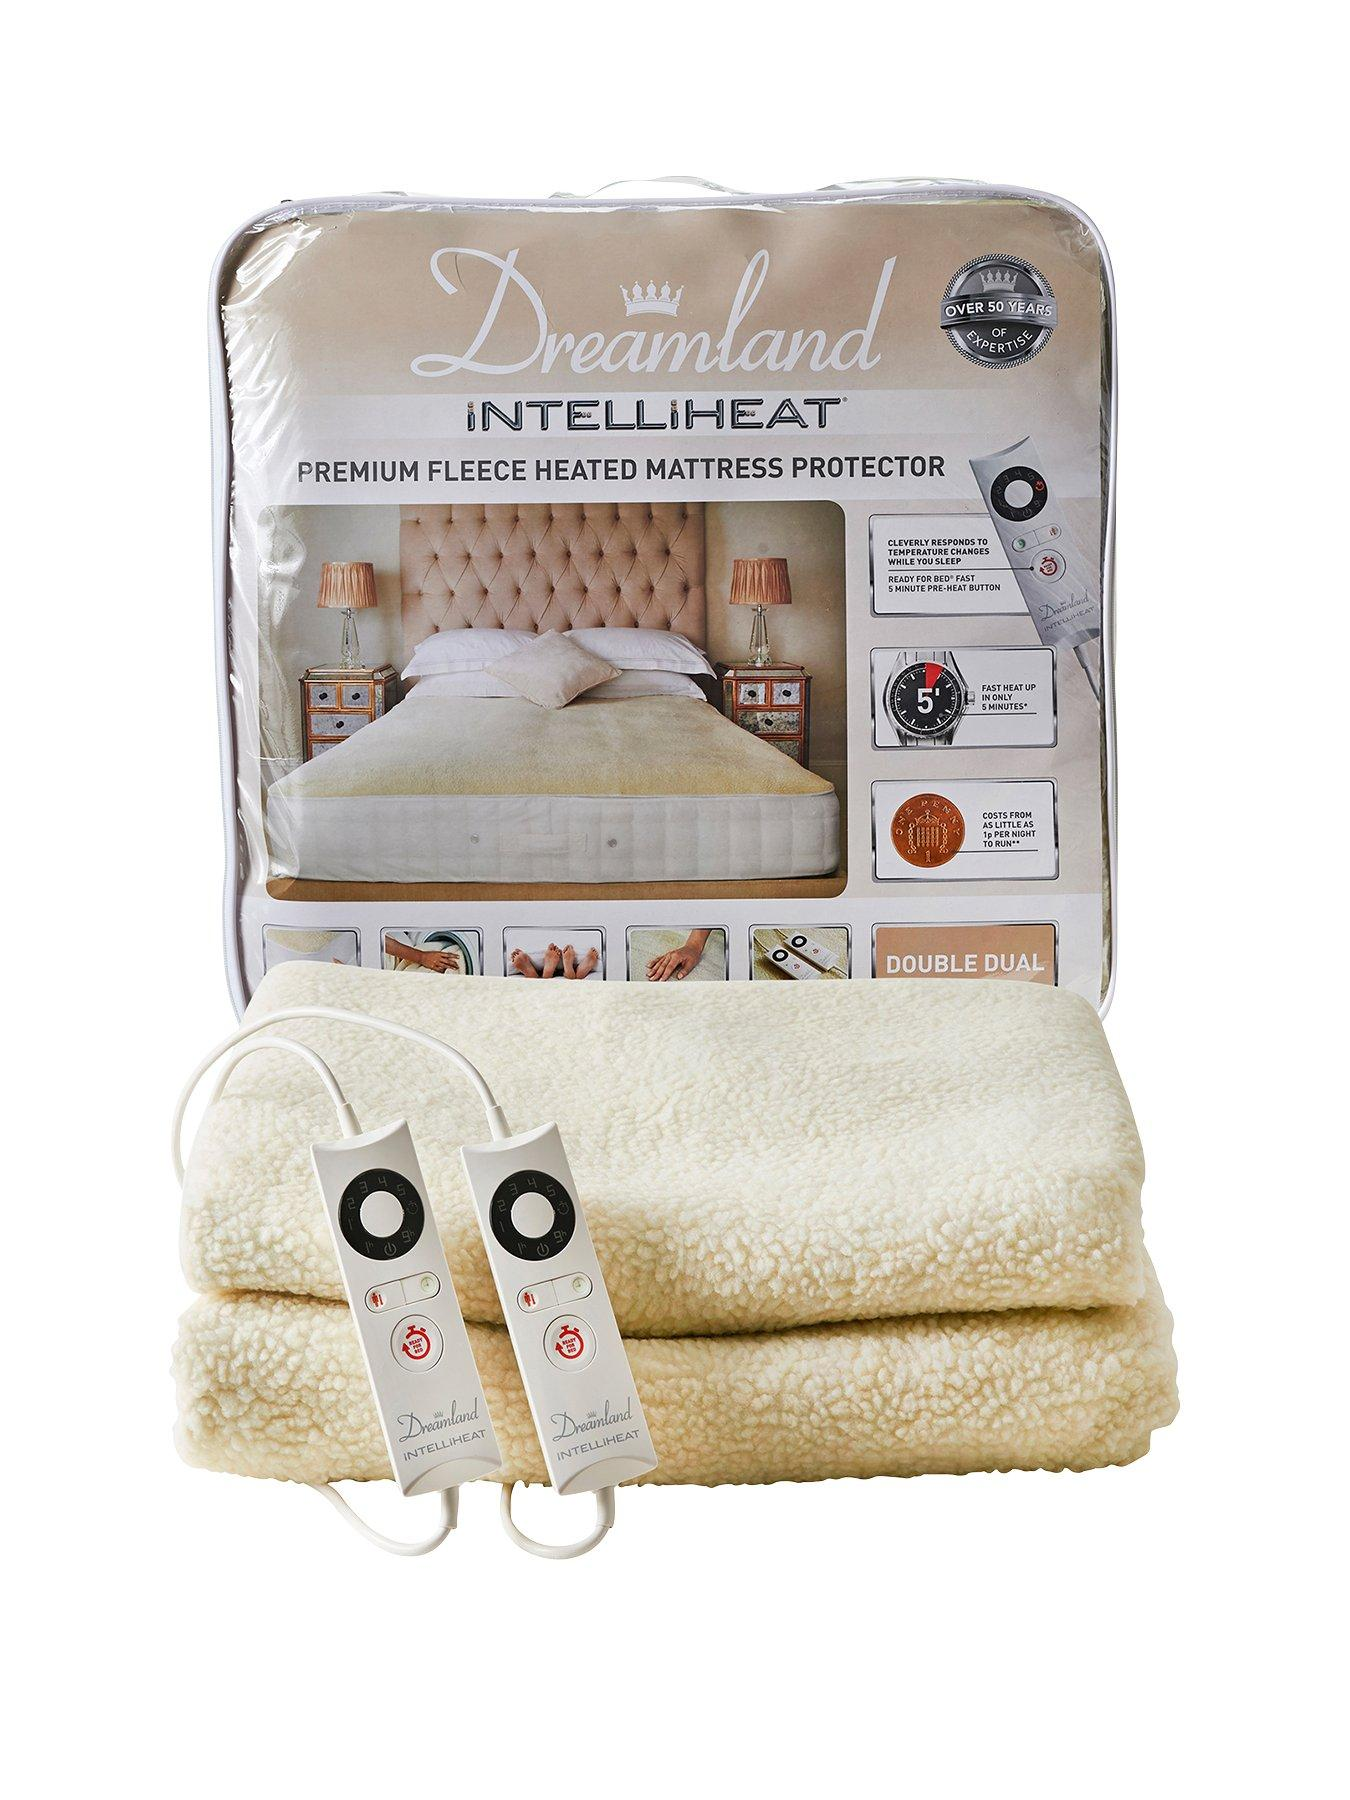 Compare prices for Dreamland Intelliheat Premium Fleece Mattress Protector